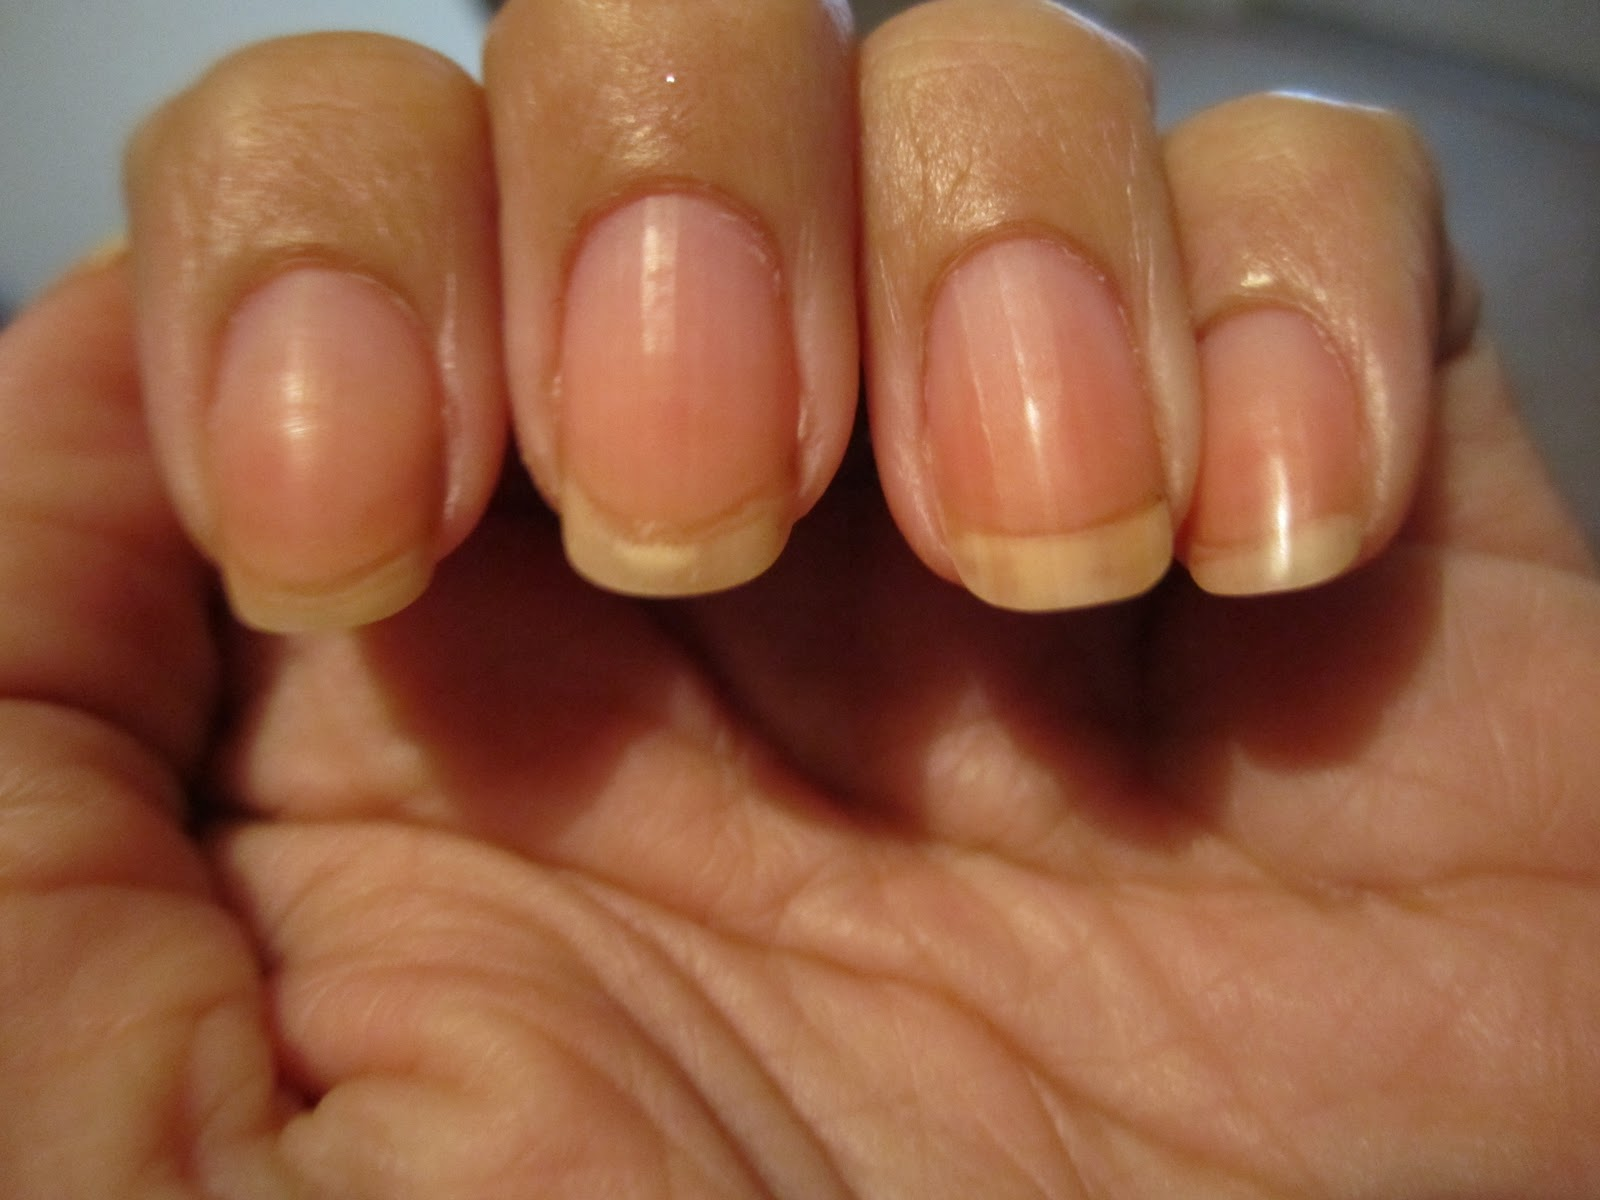 white nail beds with pink tips images